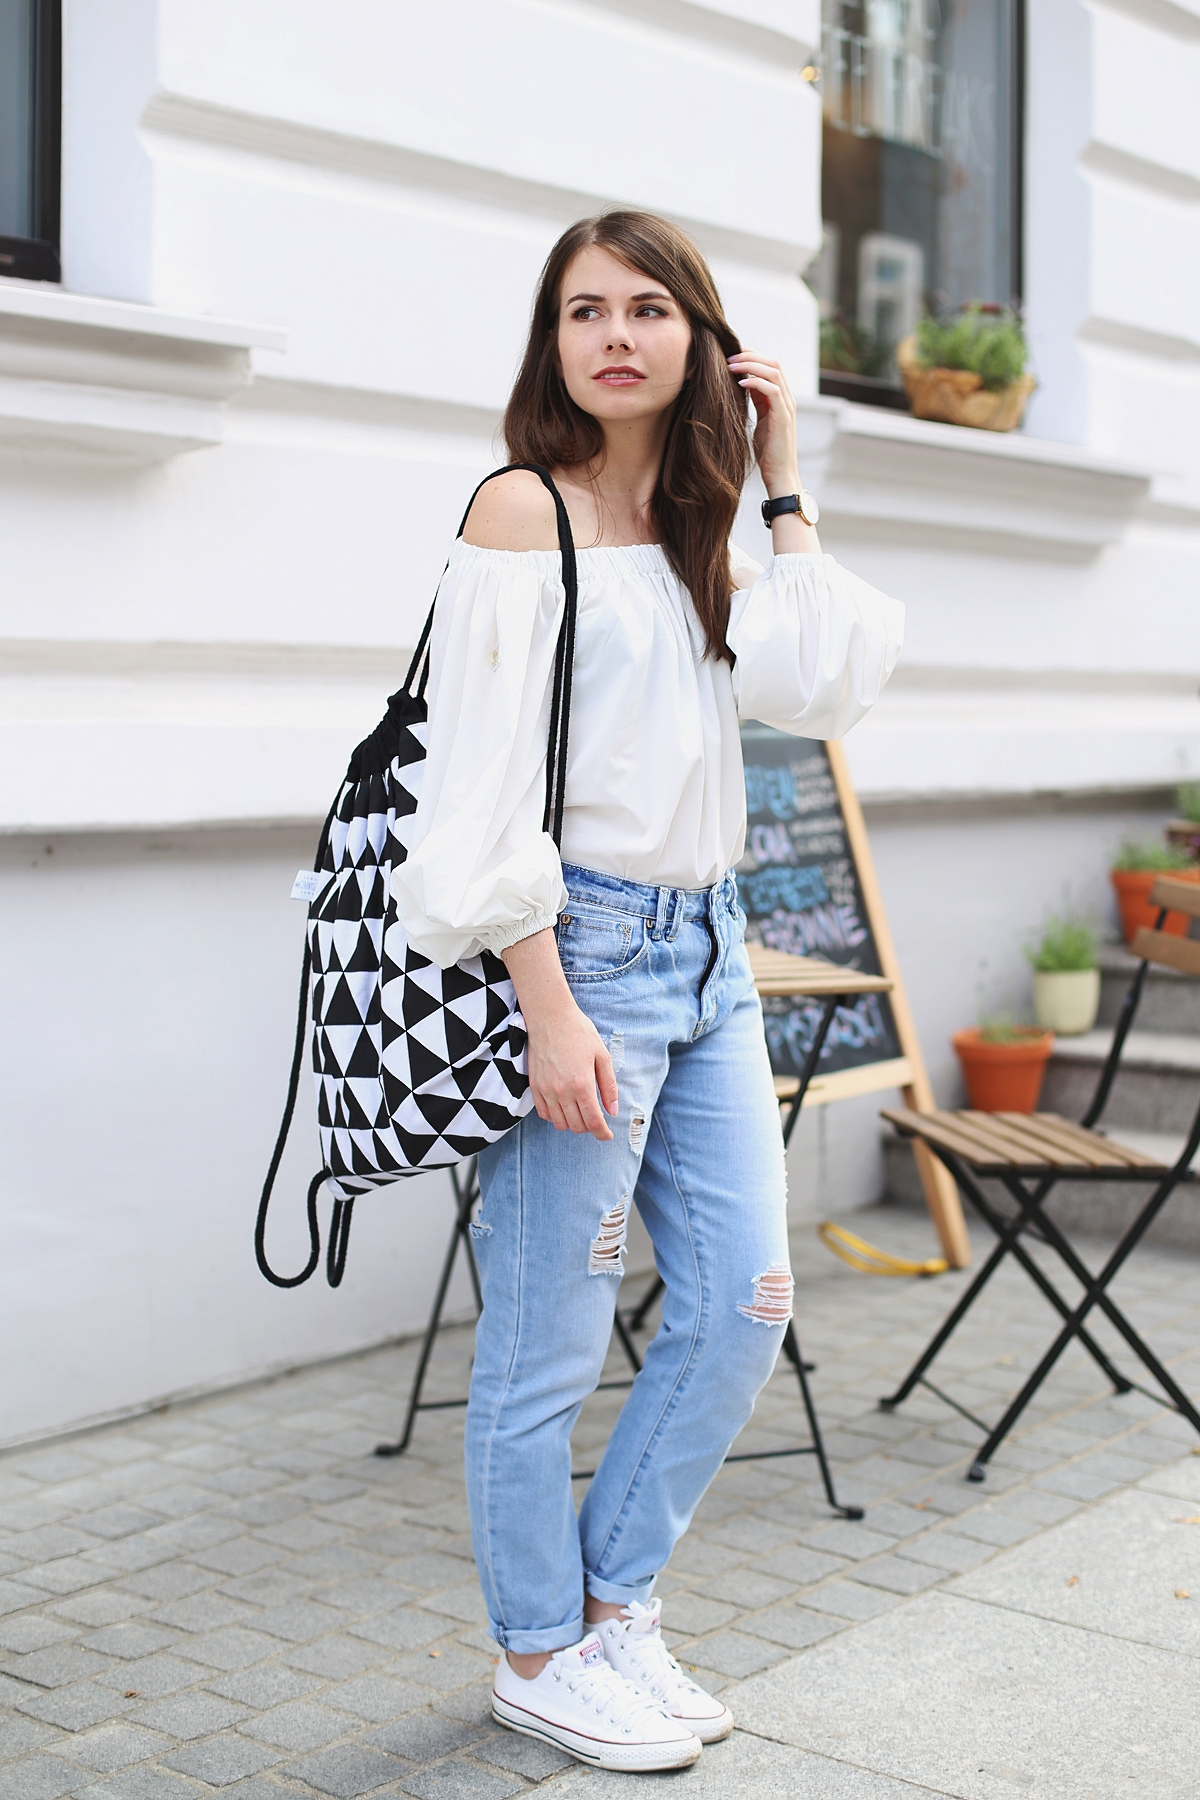 Street style - casual